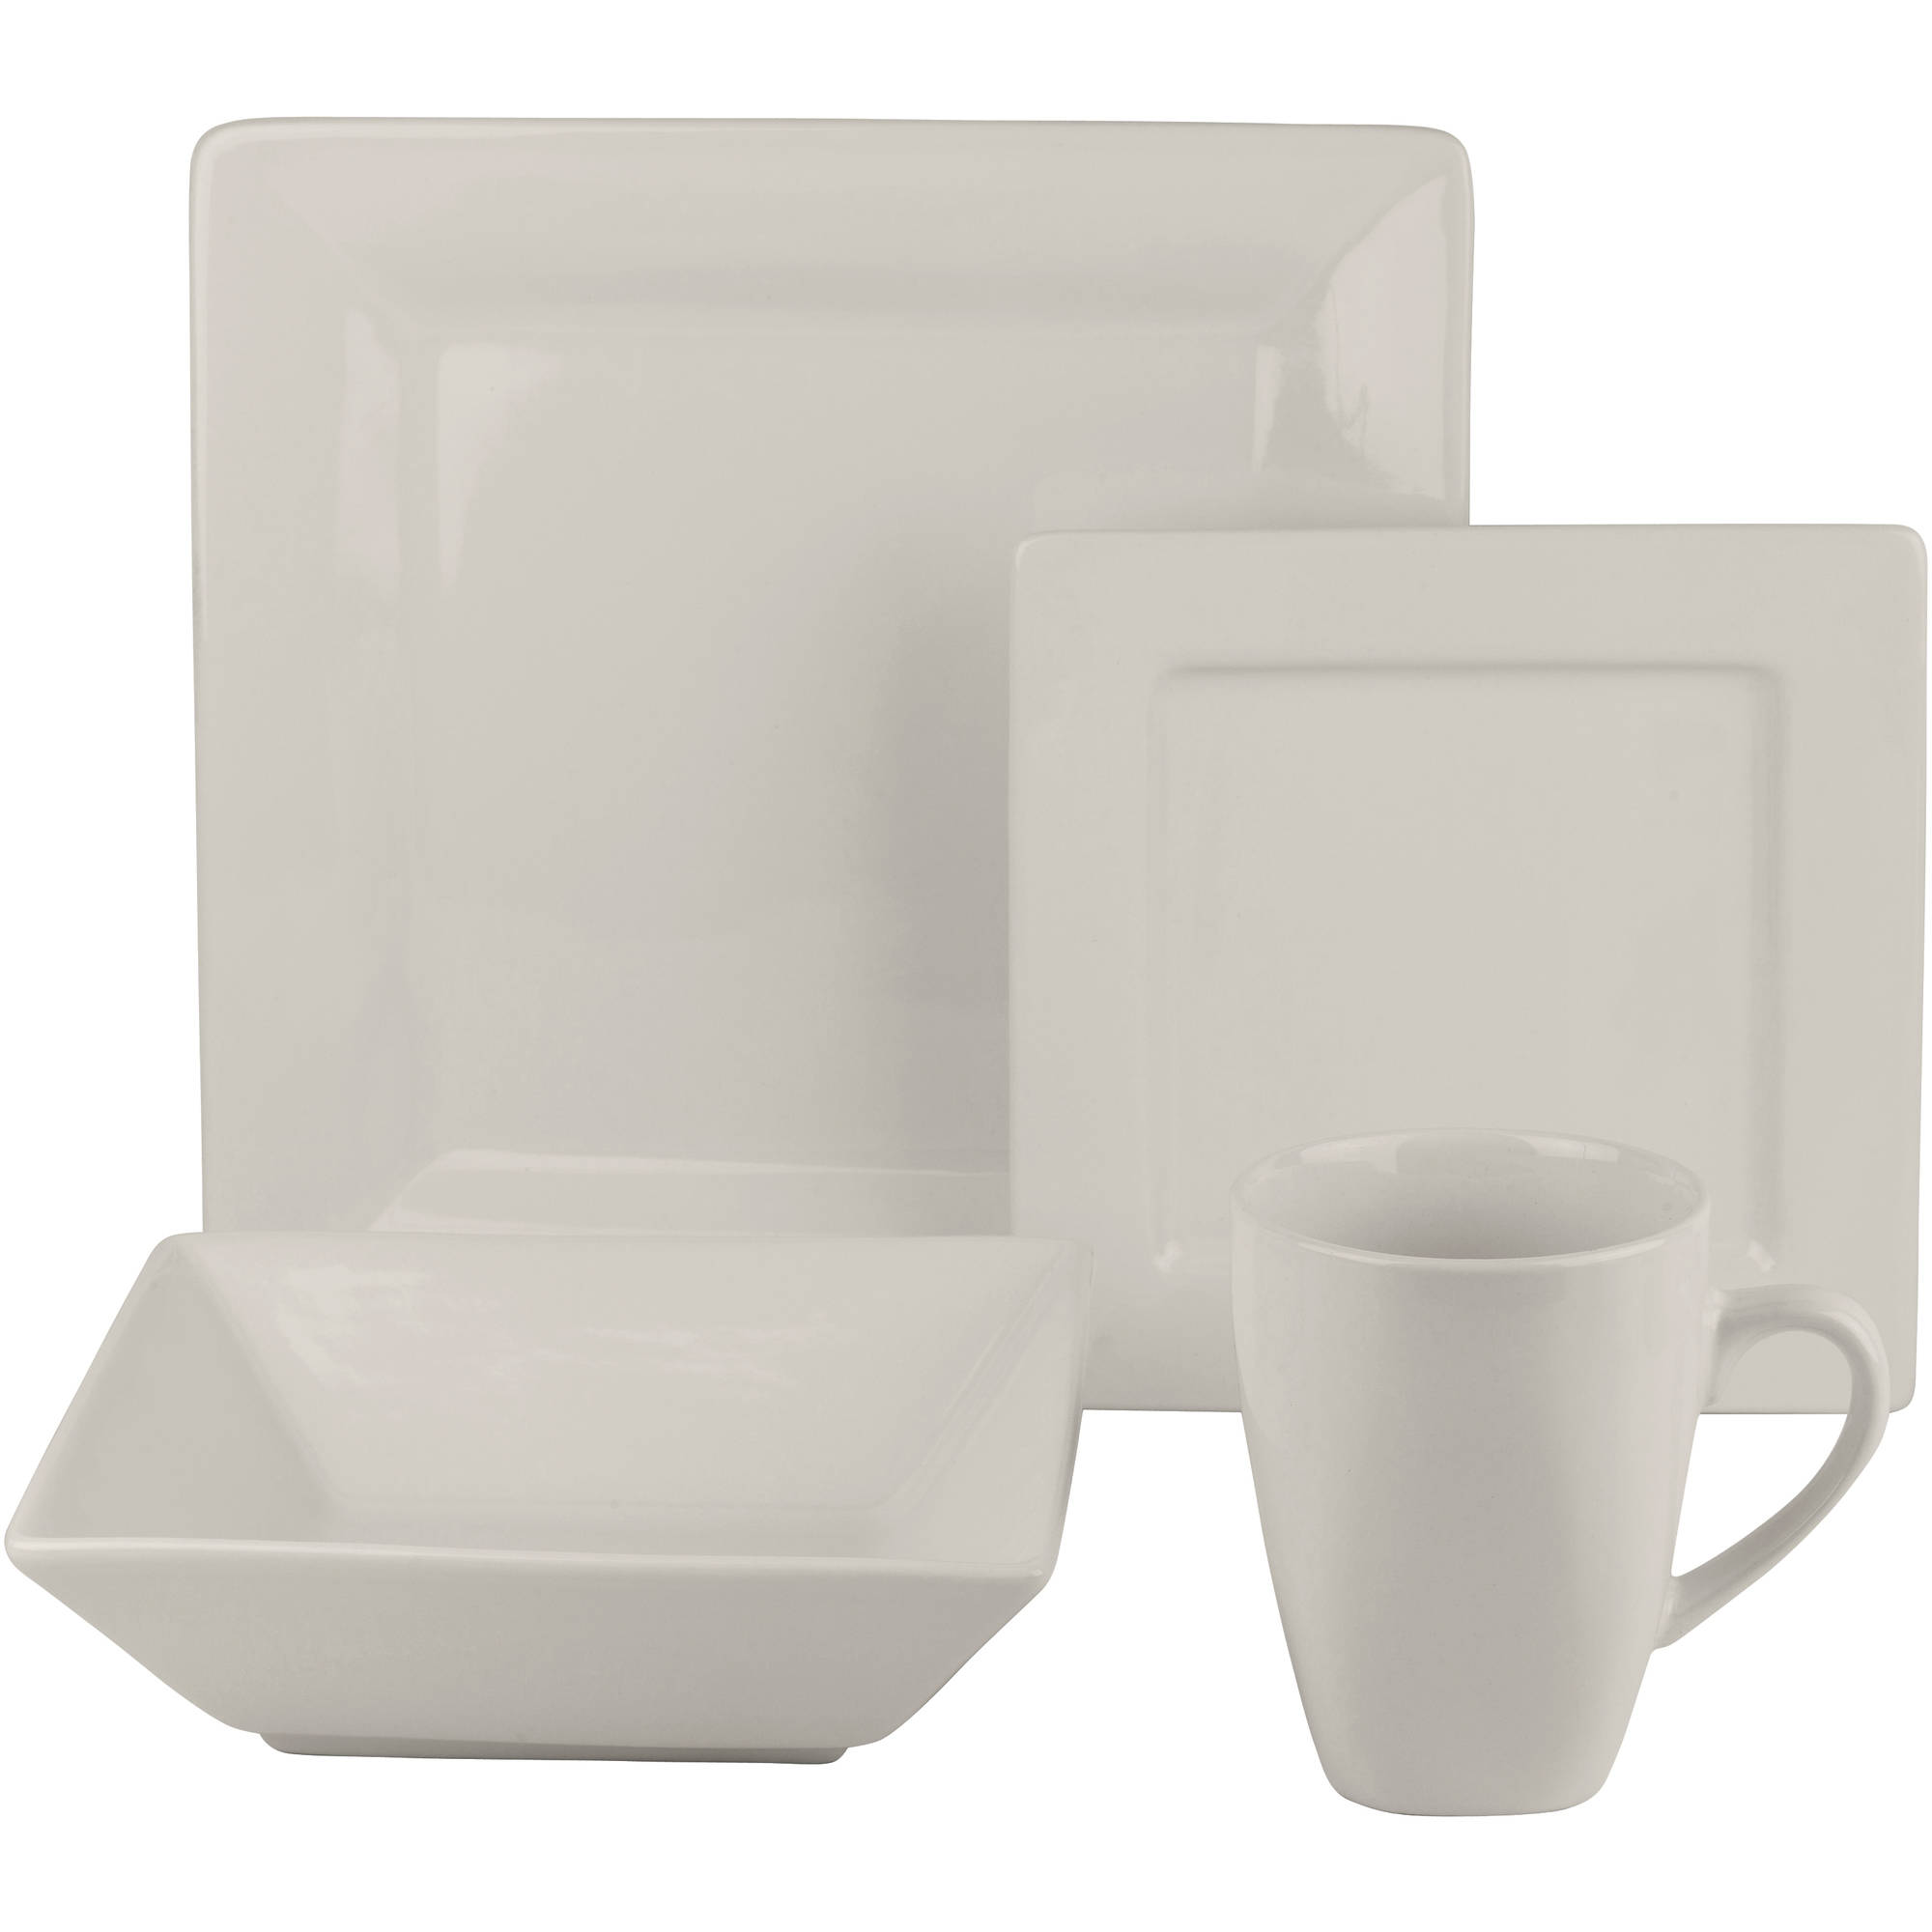 Beau Dinnerware Set 34 Pcs Square White Kitchen Dishes Bowls Plates Dinner  Porcelain